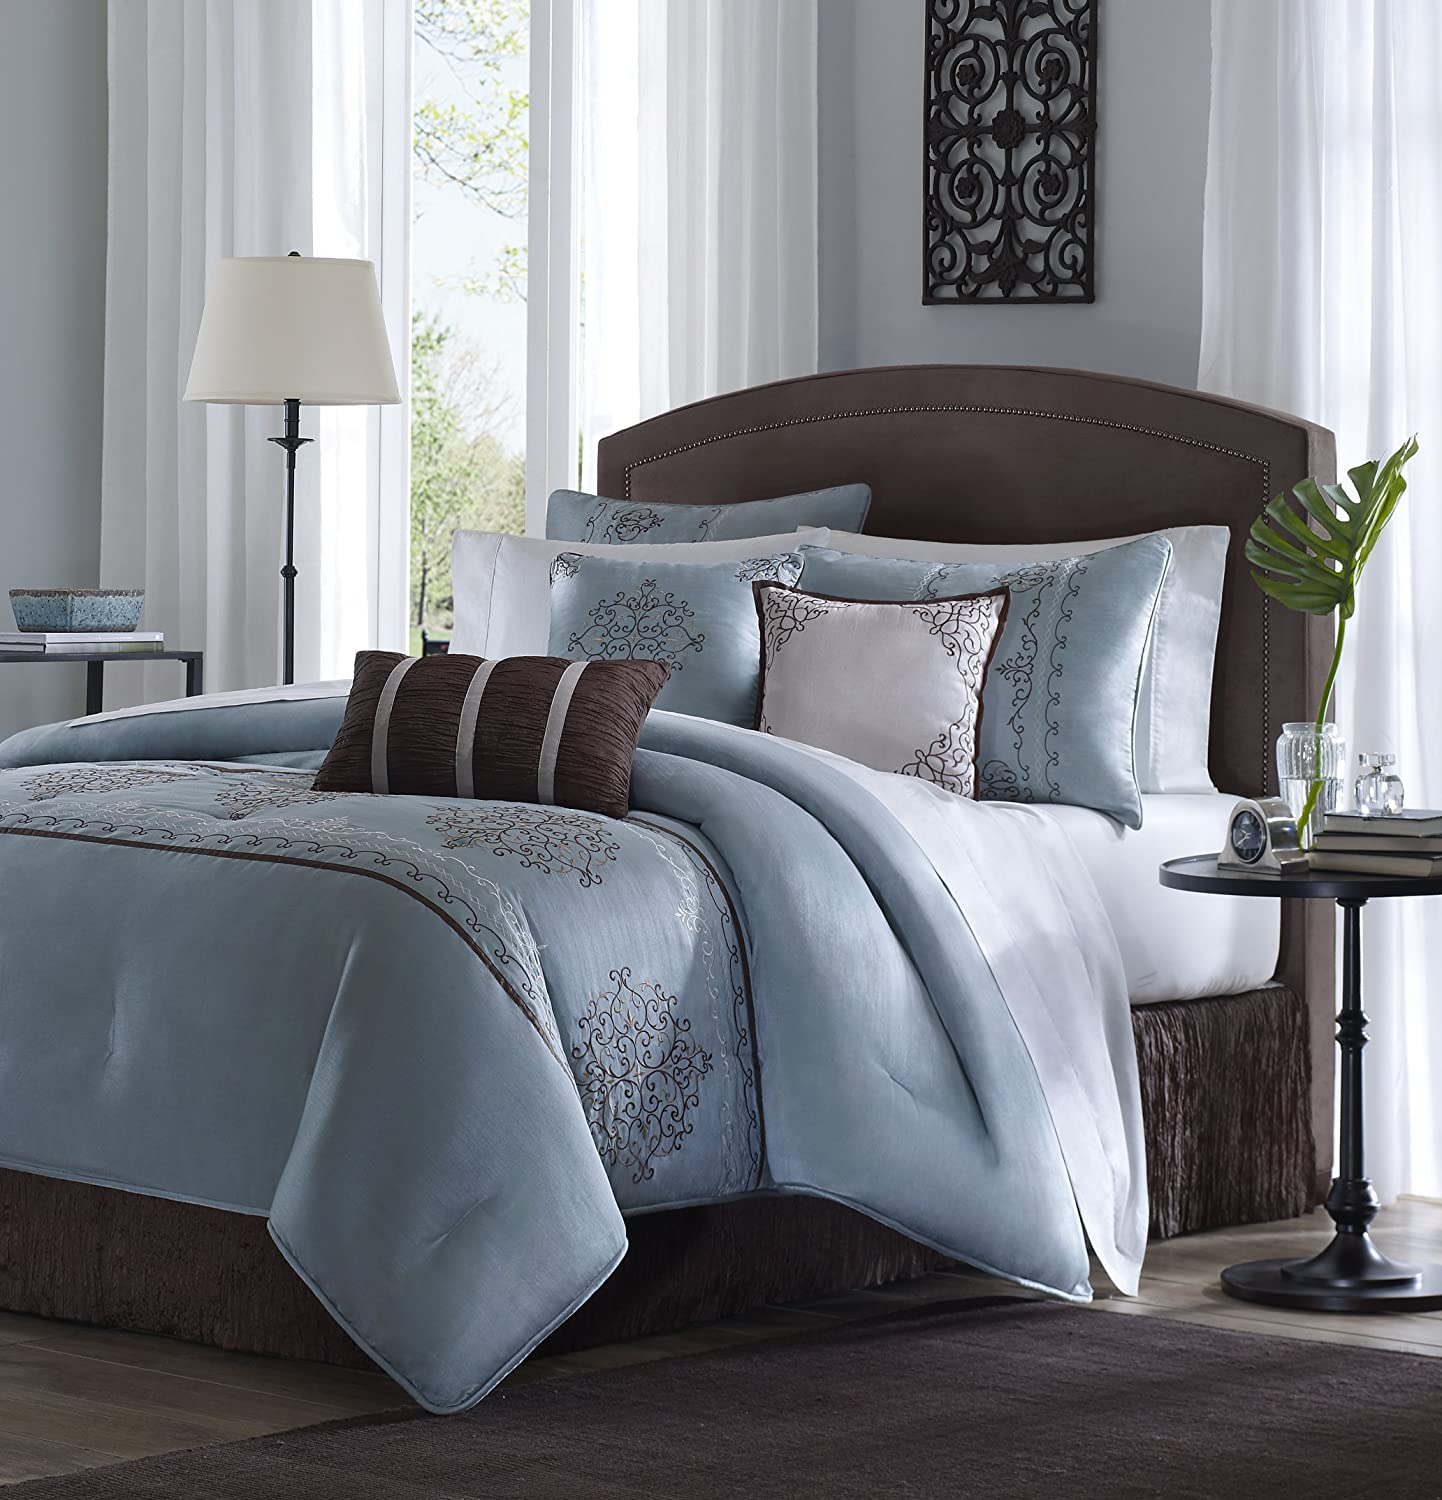 Best blue bedding sets sale ease bedding with style for Best color bed sheets